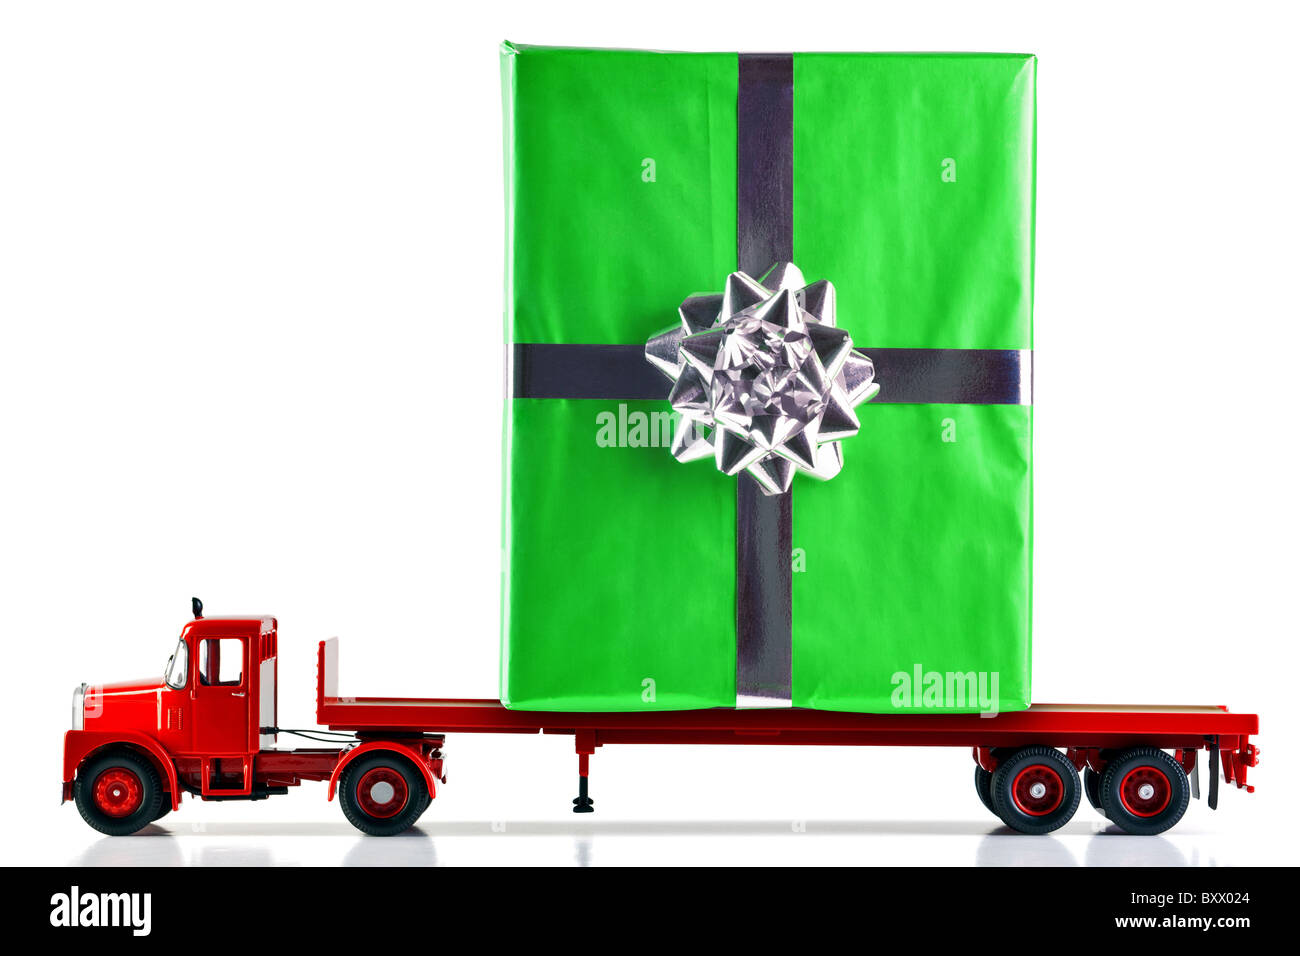 A gift wrapped present being delivered on a flatbed lorry. Isolated on a white background. Truck is a model. - Stock Image